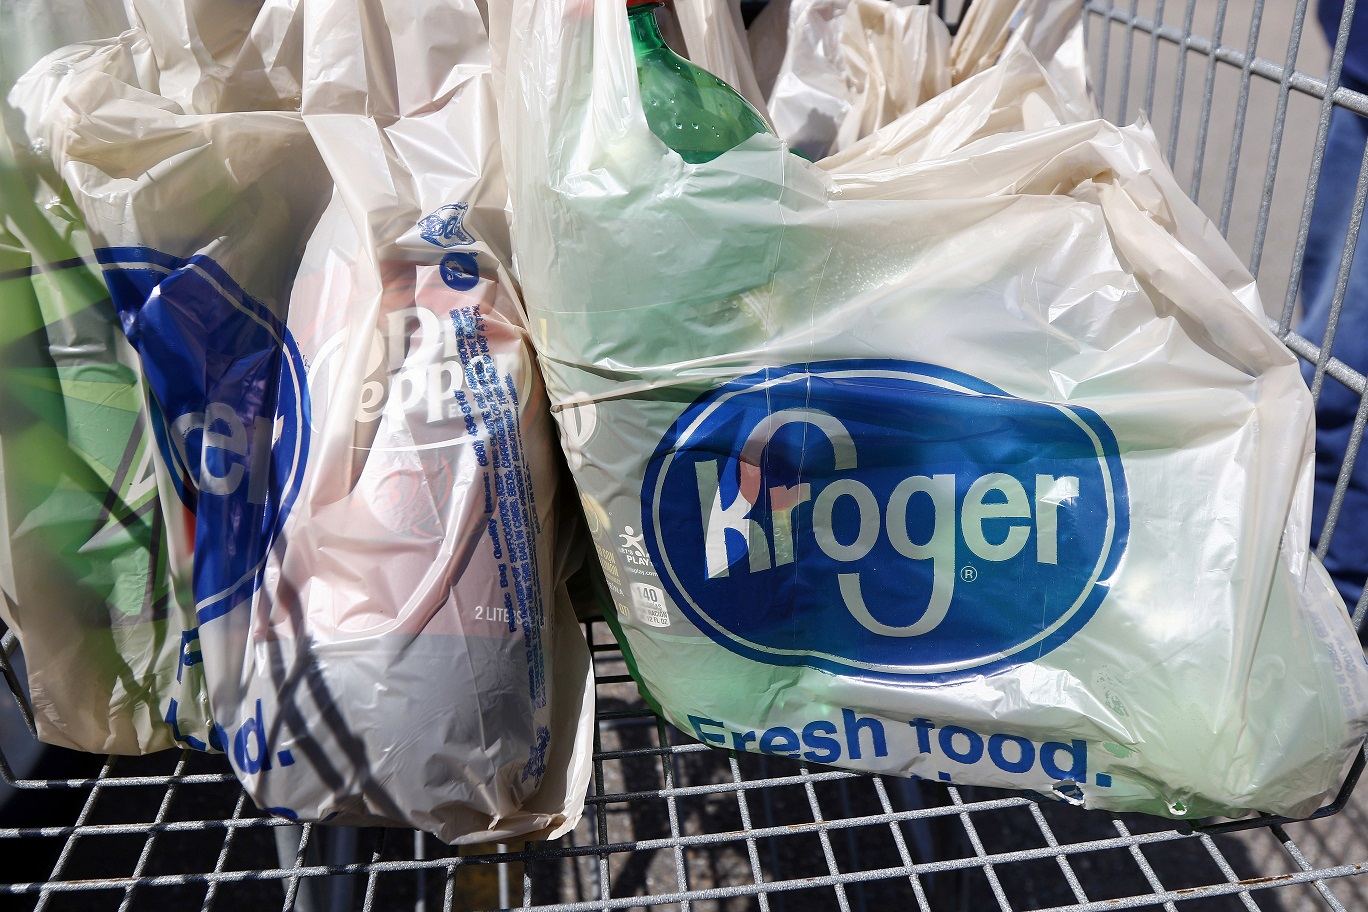 Bagged purchases from the Kroger grocery store.